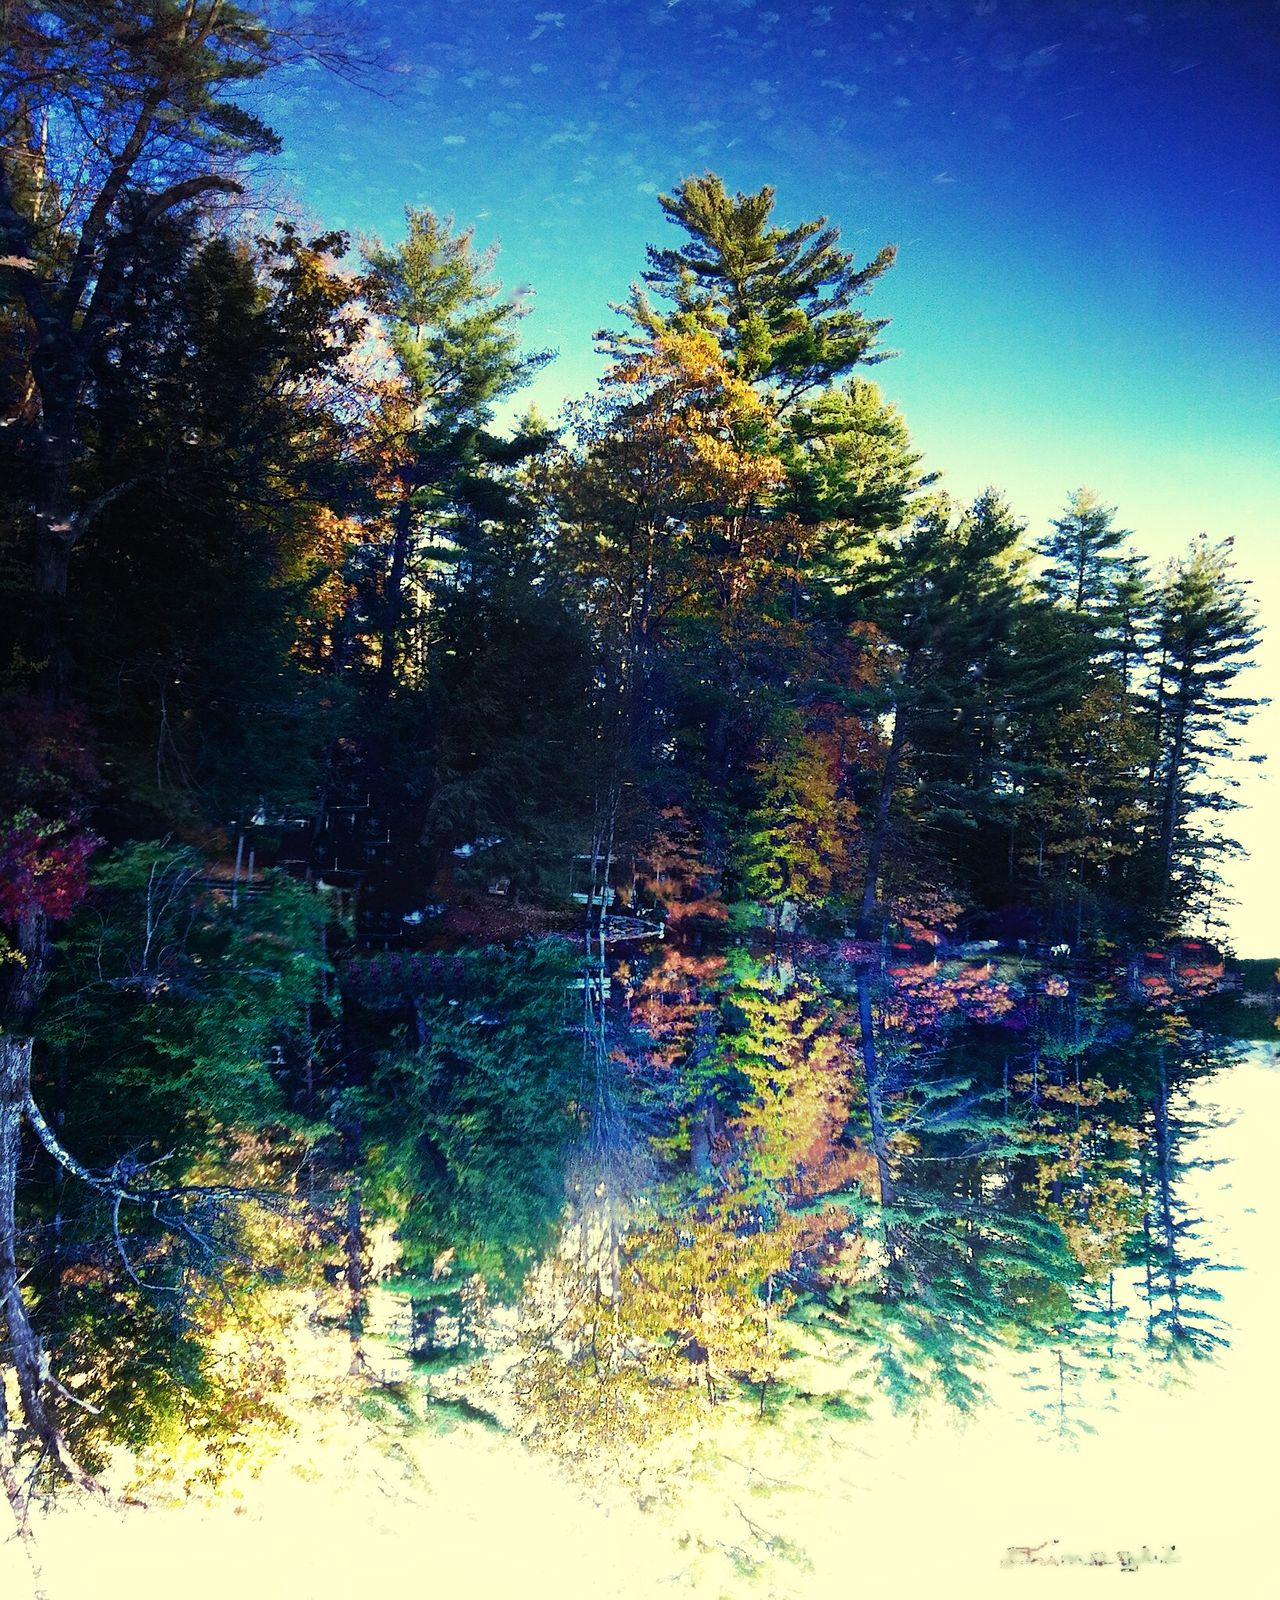 'Reflection' New Hampshire. IPhoneography EyeEm Painterly Refrigerator Artz Drimagez DXOpro 9 Aperture Water Reflections NEM Submissions Supernormal My Unique Style